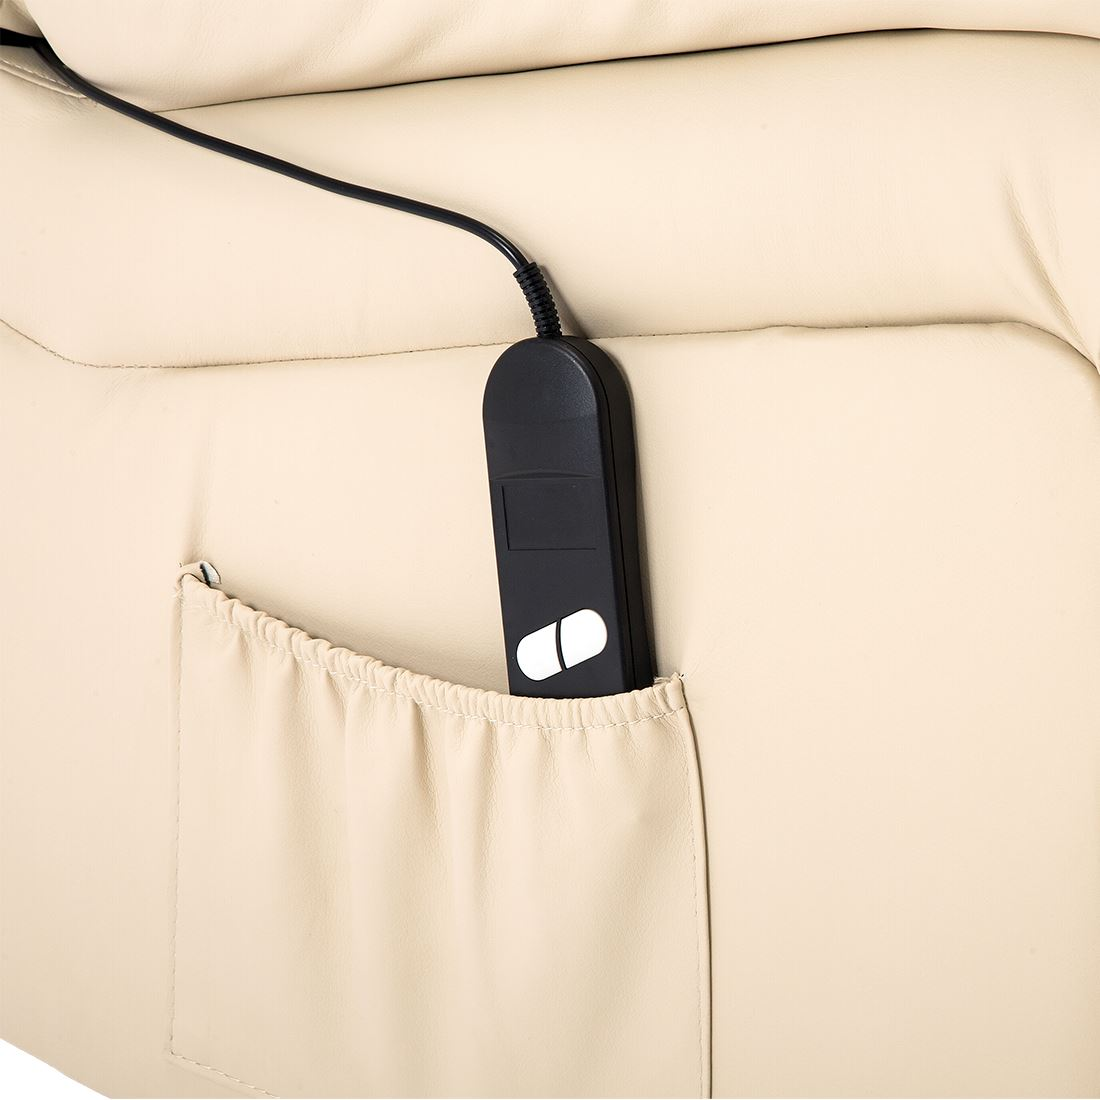 SEATTLE-ELECTRIC-RISE-REAL-LEATHER-RECLINER-ARMCHAIR-SOFA-HOME-LOUNGE-CHAIR thumbnail 28